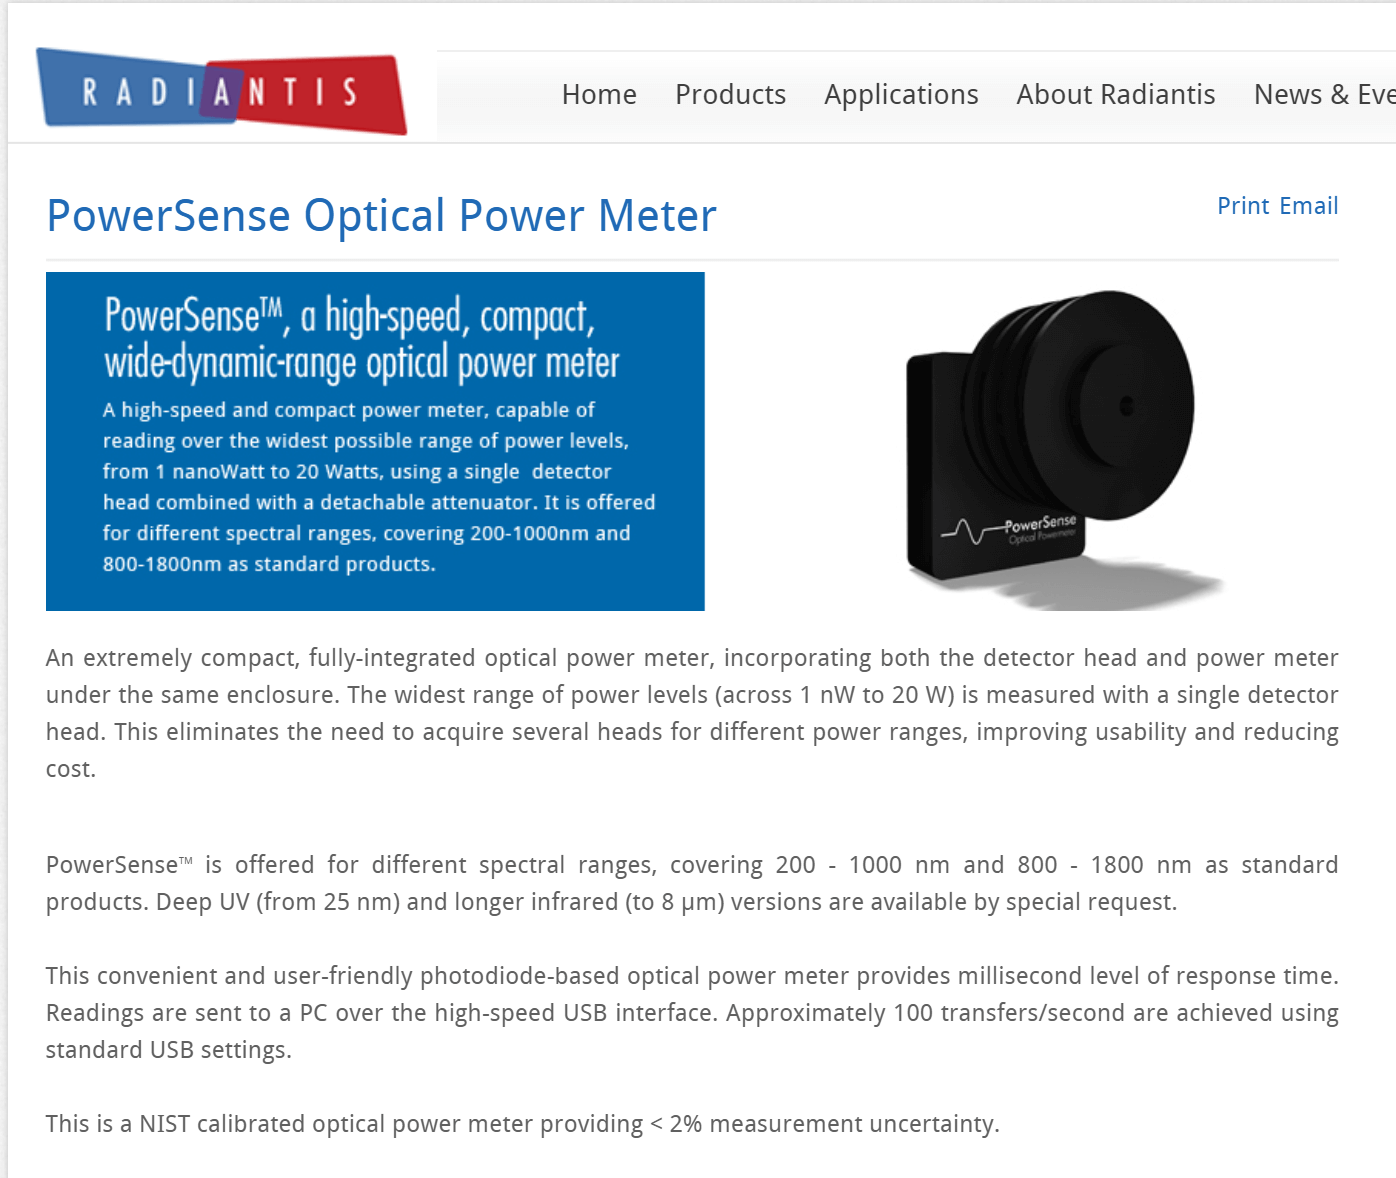 PowerSense Optical Power Meter